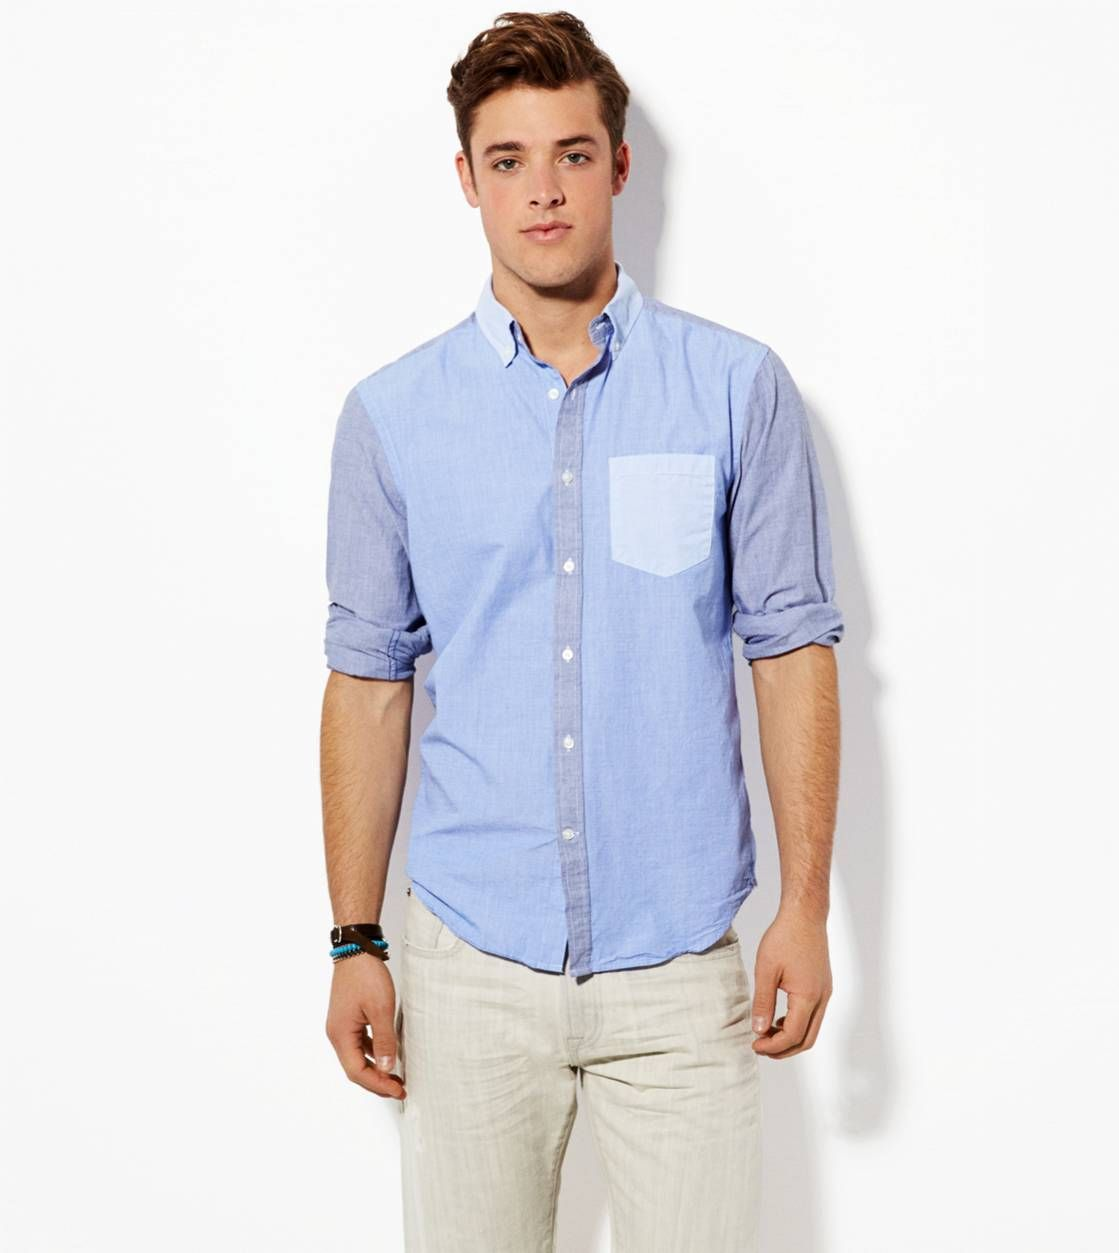 Blue Colorblock Button Down Shirt from @American Eagle Outfitters ...